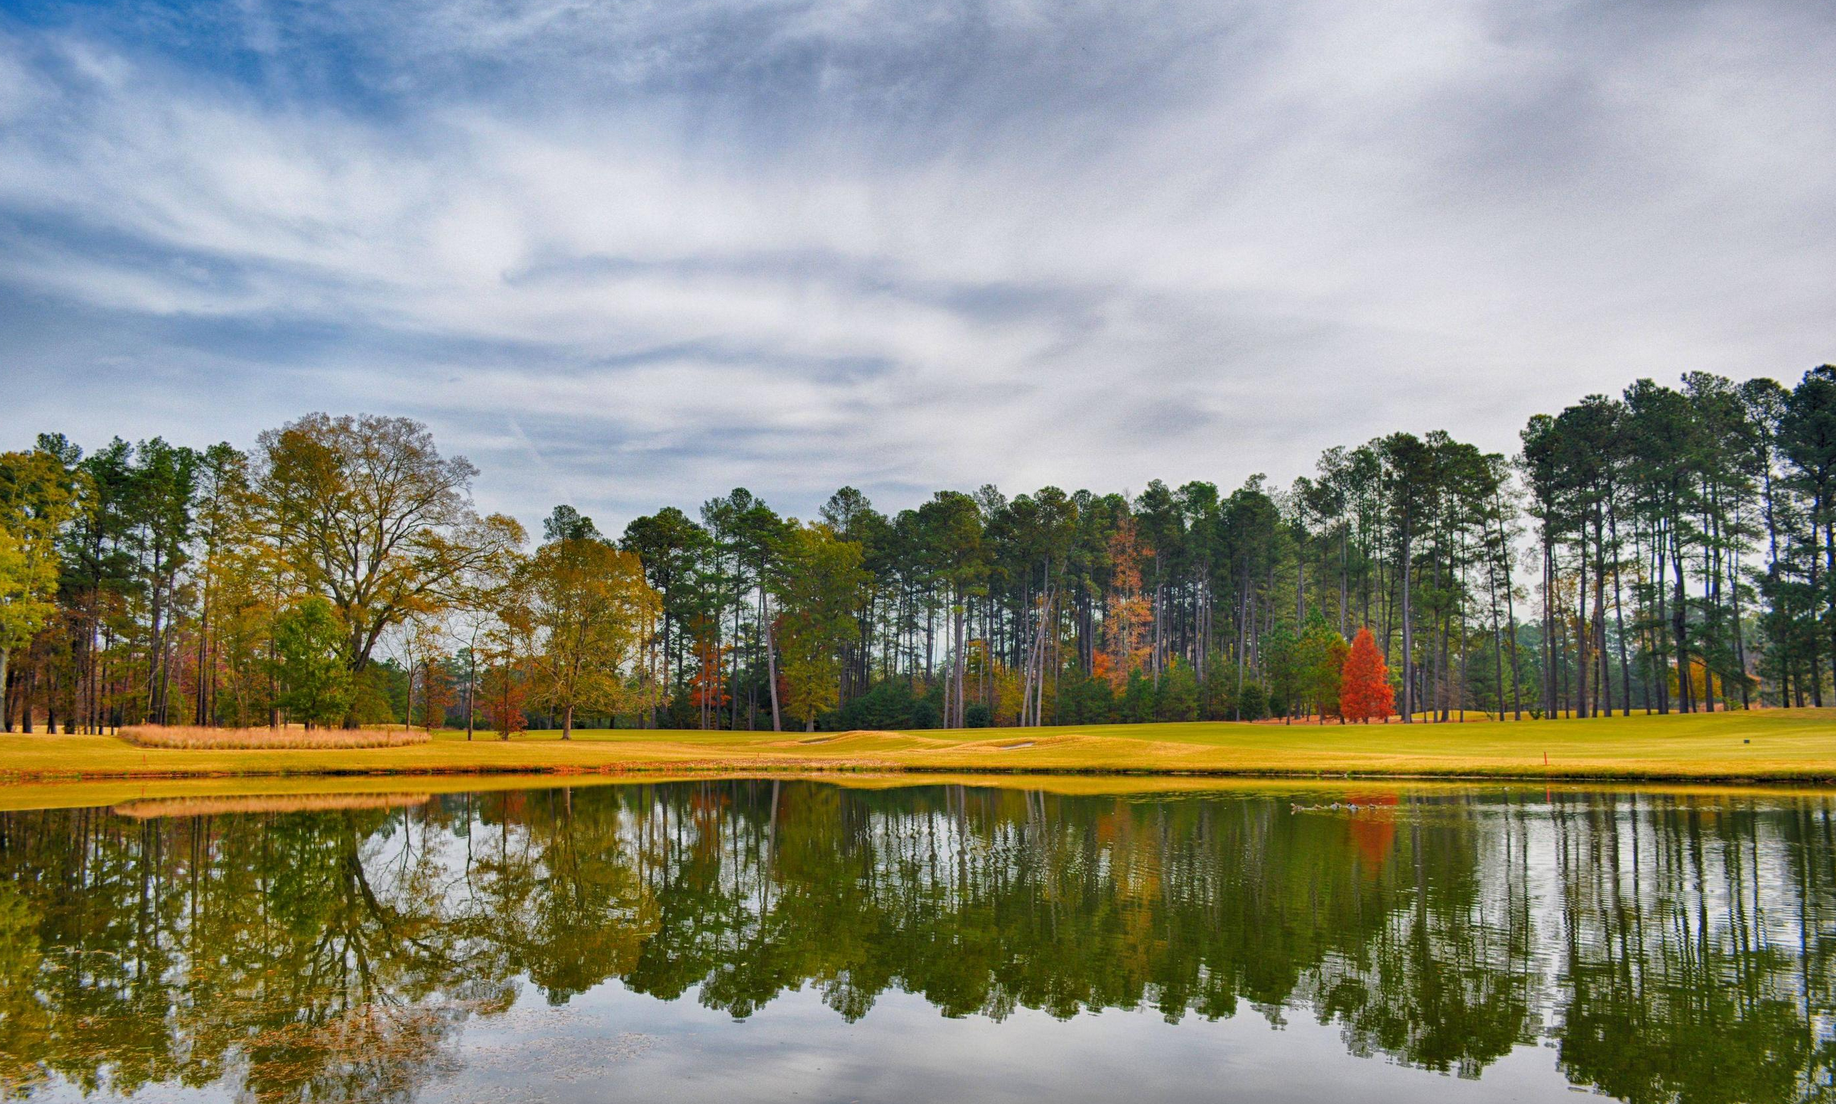 unc-finley-golf-course-hdr